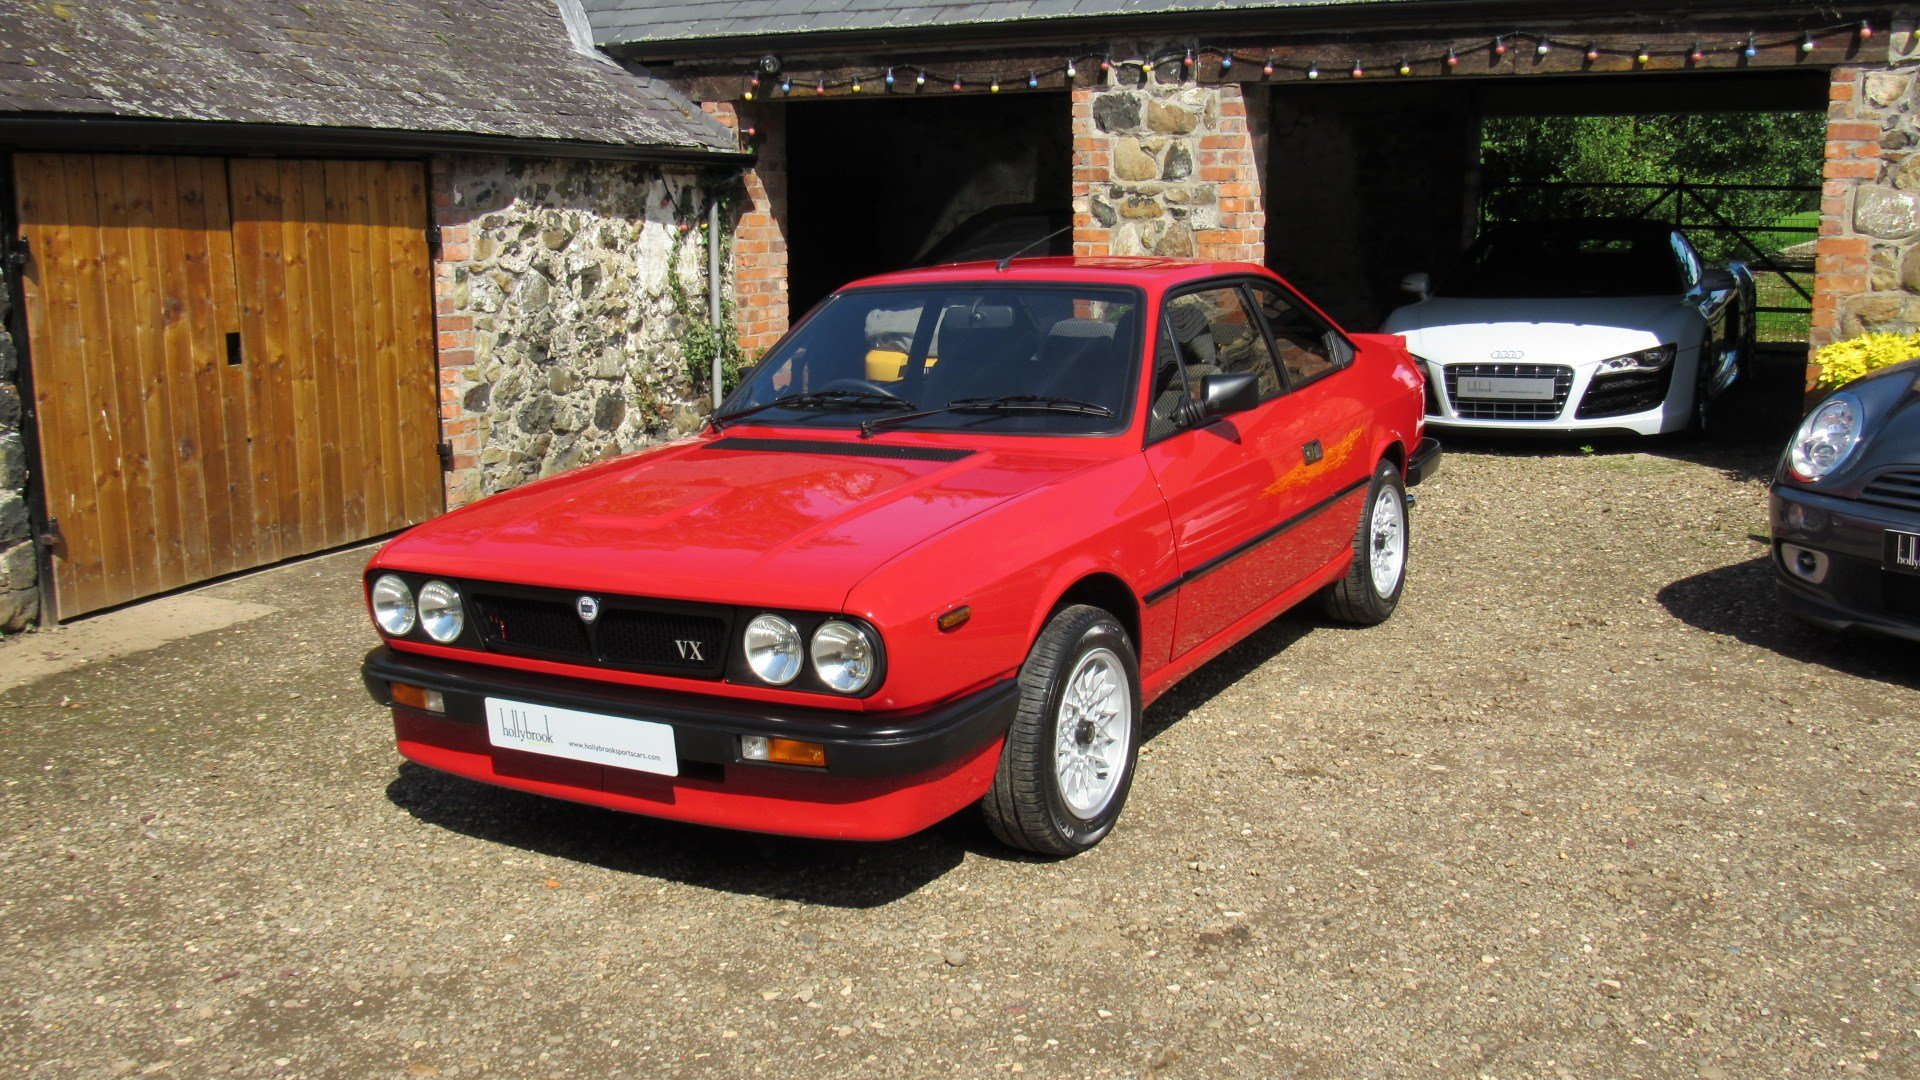 New Lancia Beta Volumex Supercharged Hollybrook Sports Cars On This Month